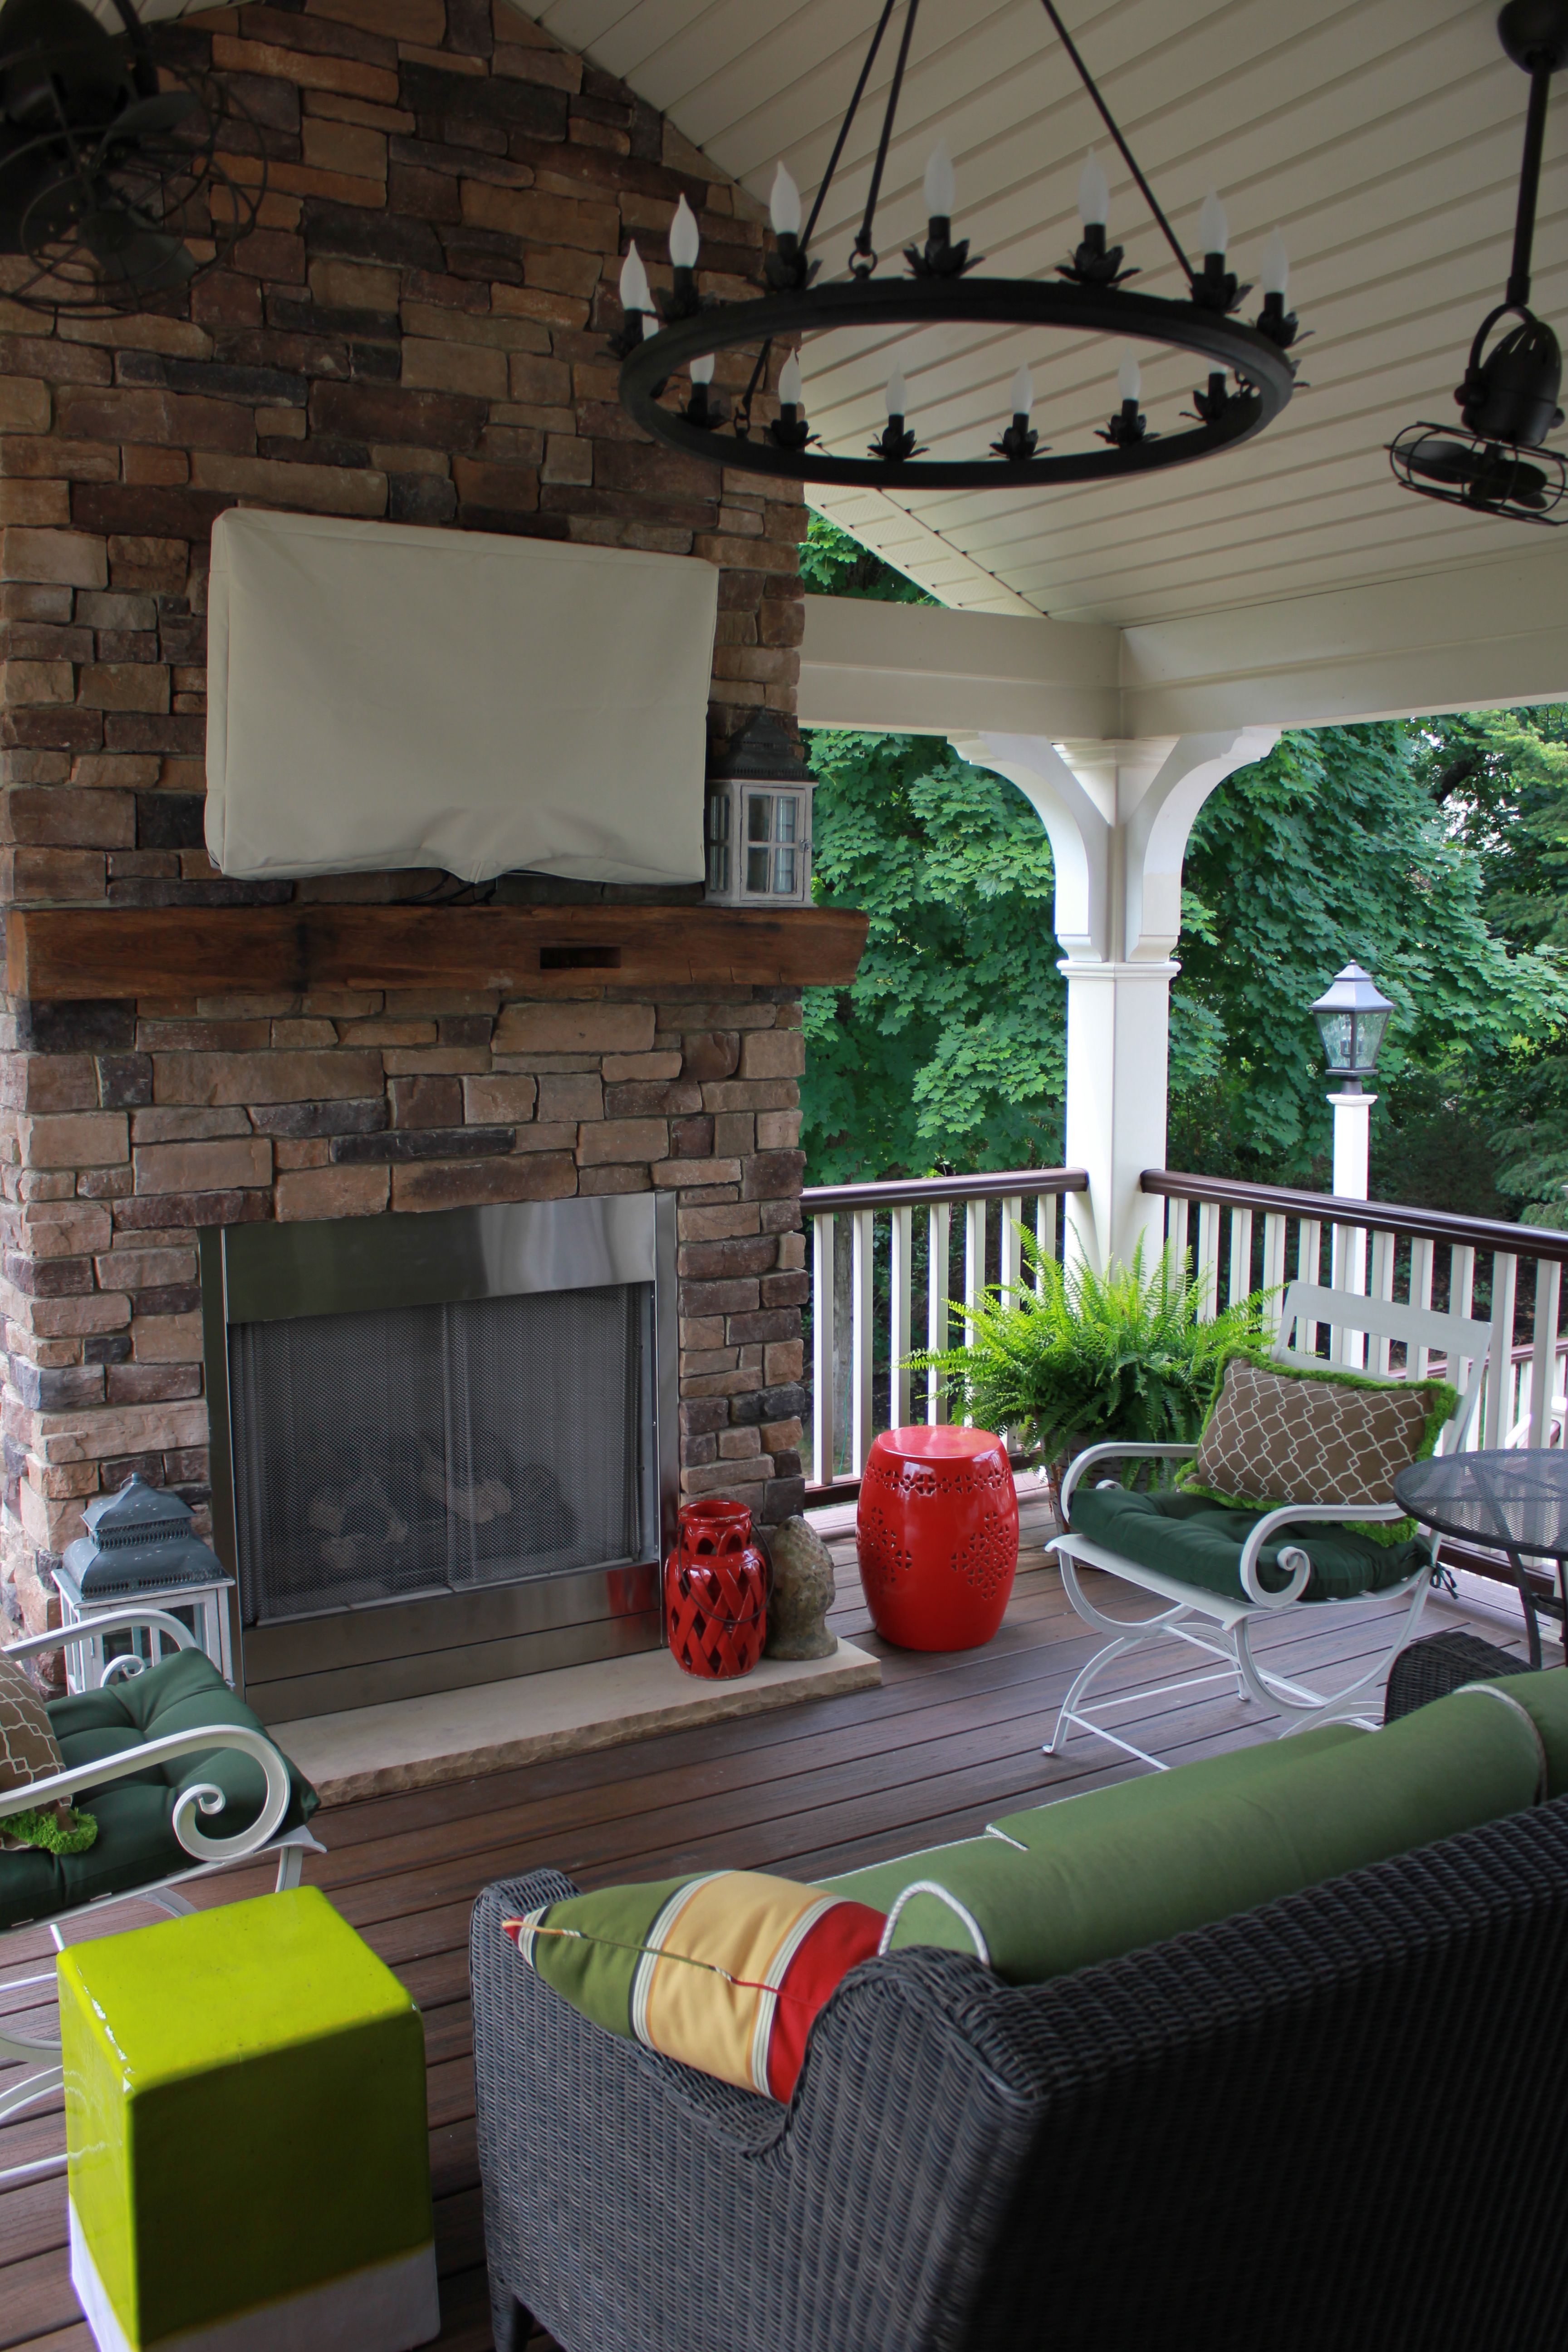 Trex Deck with Gas Fireplace   Outdoor remodel, Deck ... on Outdoor Gas Fireplace For Deck id=62254